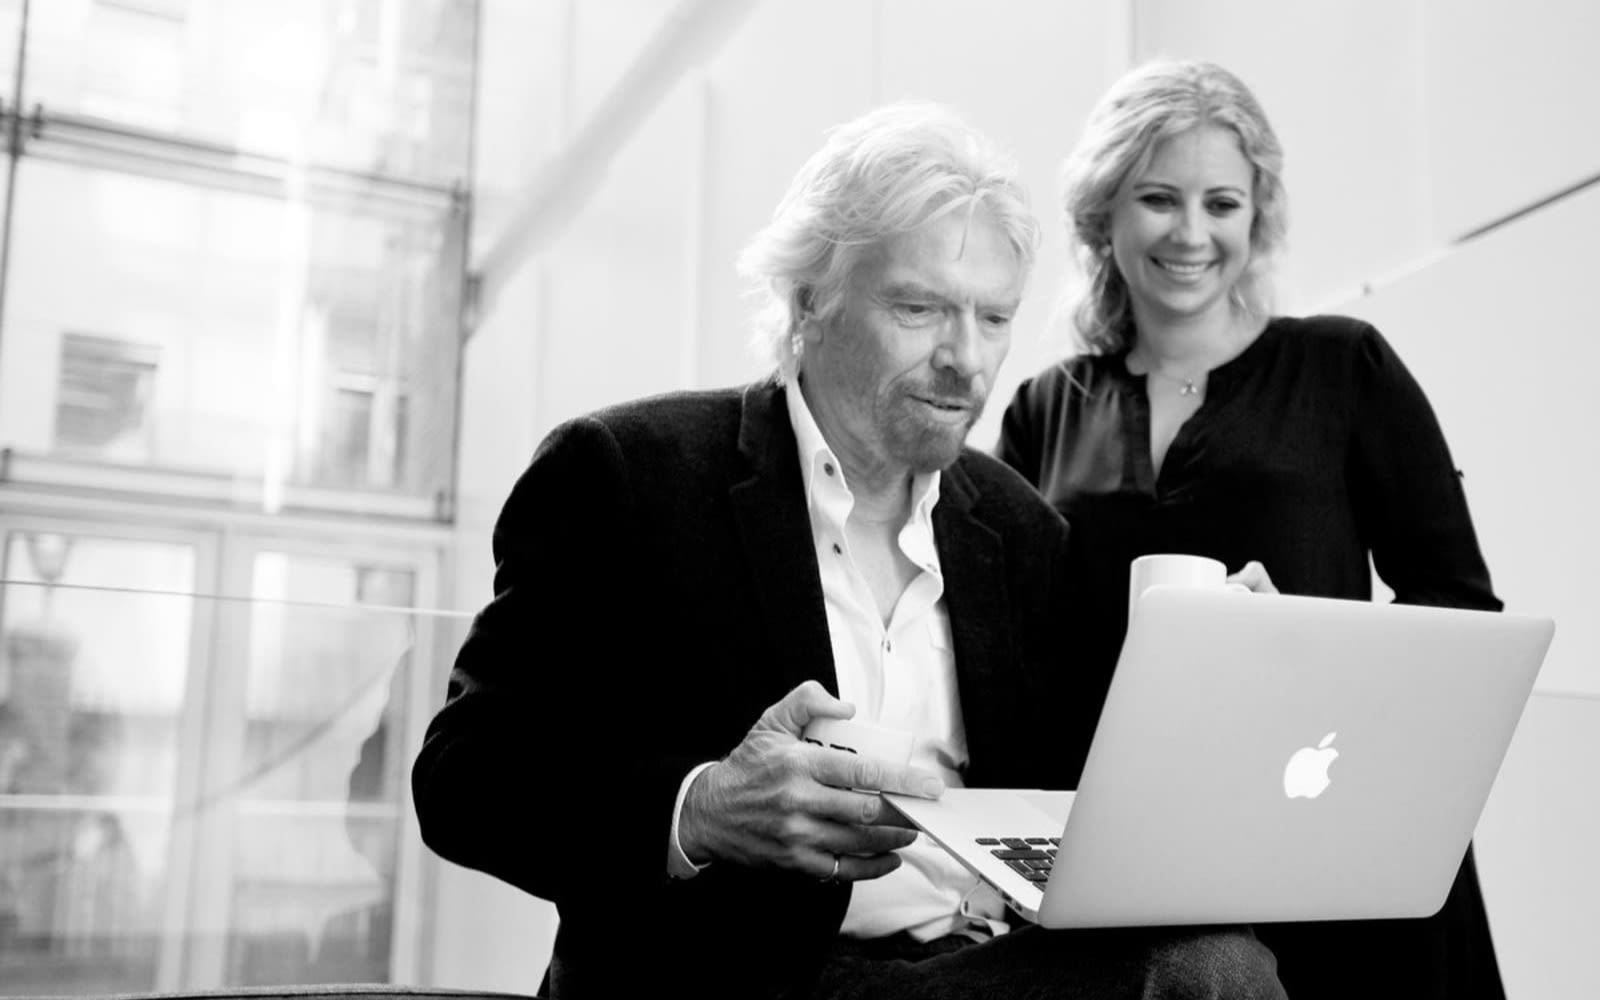 Black and white image of Richard and Holly Branson looking at a computer